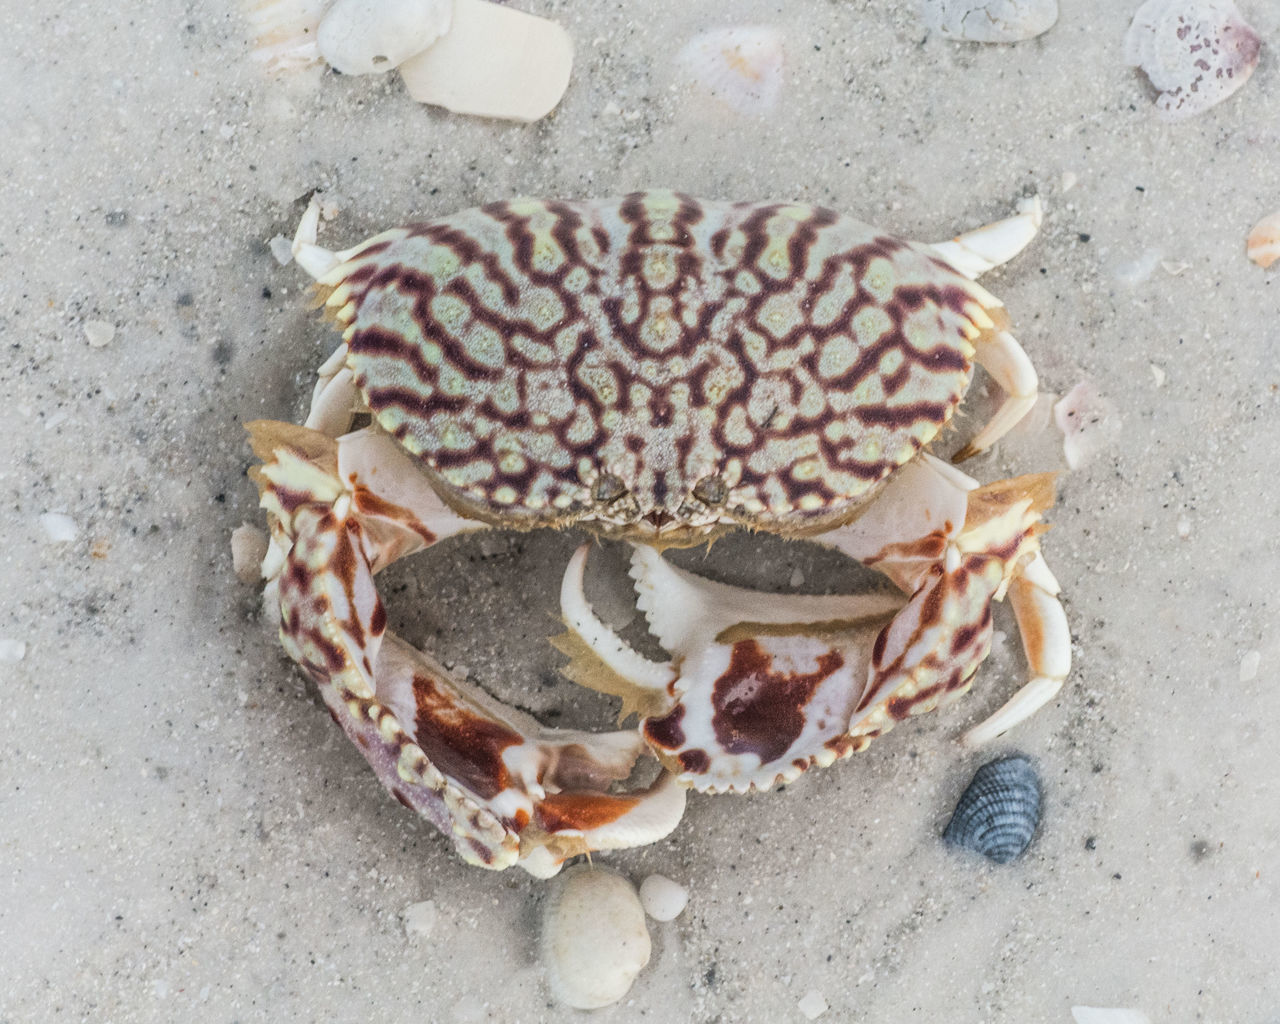 The red tide brought this up on shore. Beachphotography Beauty In Nature Crab Creatures Of The Sea Day High Angle View Islandlife Nature No People Ocean Oceanside Pattern, Texture, Shape And Form Sealife Tide